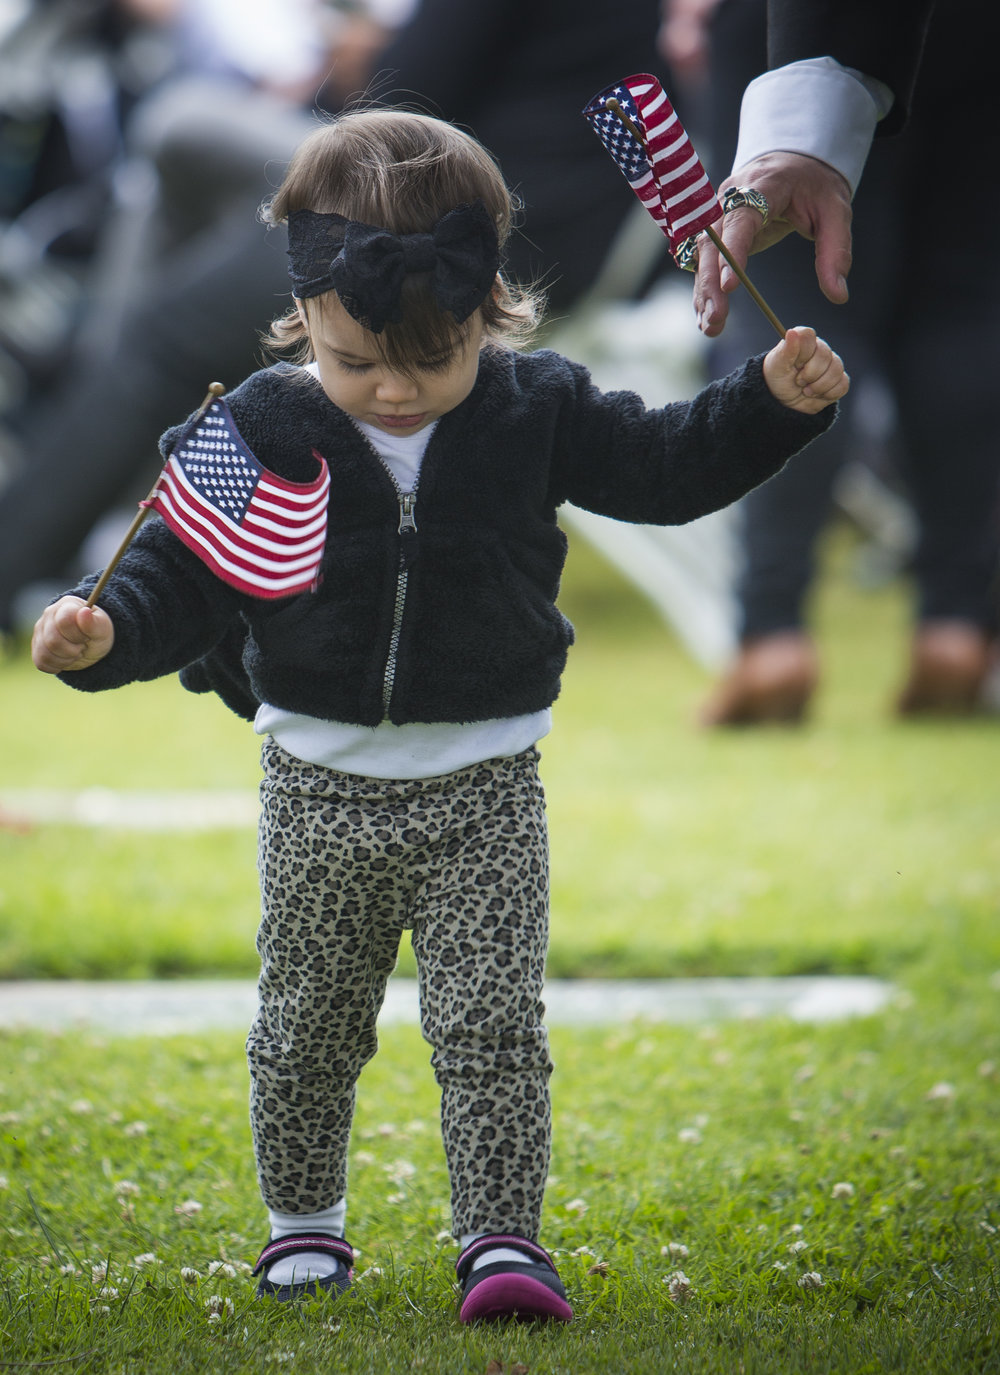 May 29,2017. 2 year old Ziva Ramiez attends the 79th Annual Memorial Day Observance at Woodlawn Cemetary in Santa Monica California, with her father Brandon Ramiez. Bradon a member of The Masonic Mens lodge, in Santa Monica presented a wreath to the tomb of the unknown solider. (Daniel Bowyer)